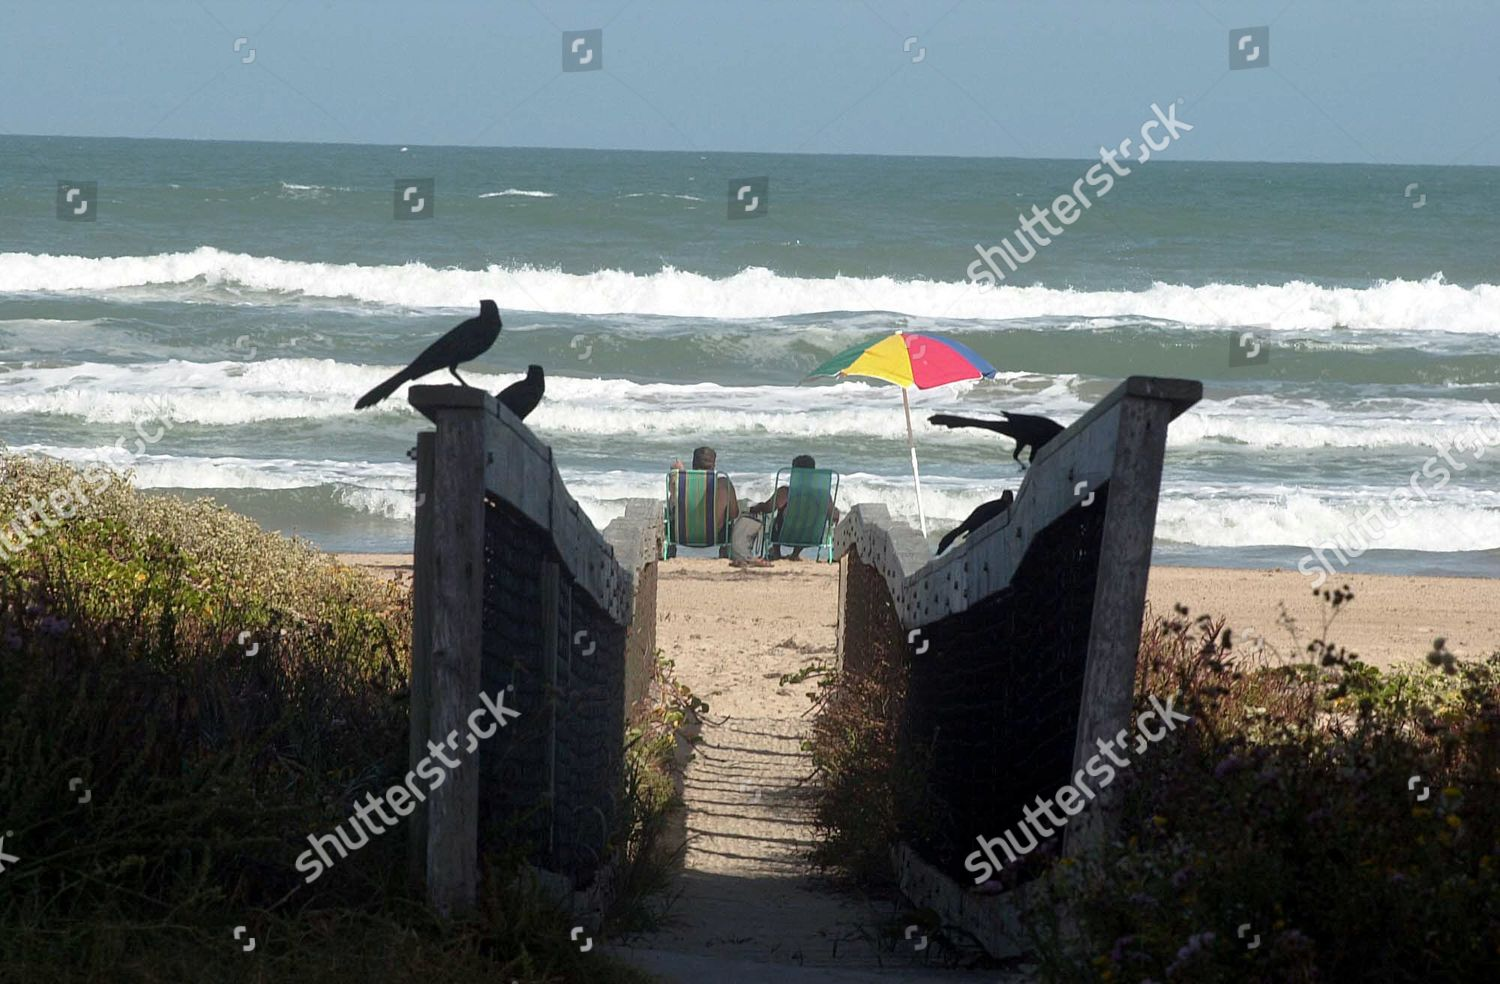 South Padre Island beaches shown have been Editorial Stock